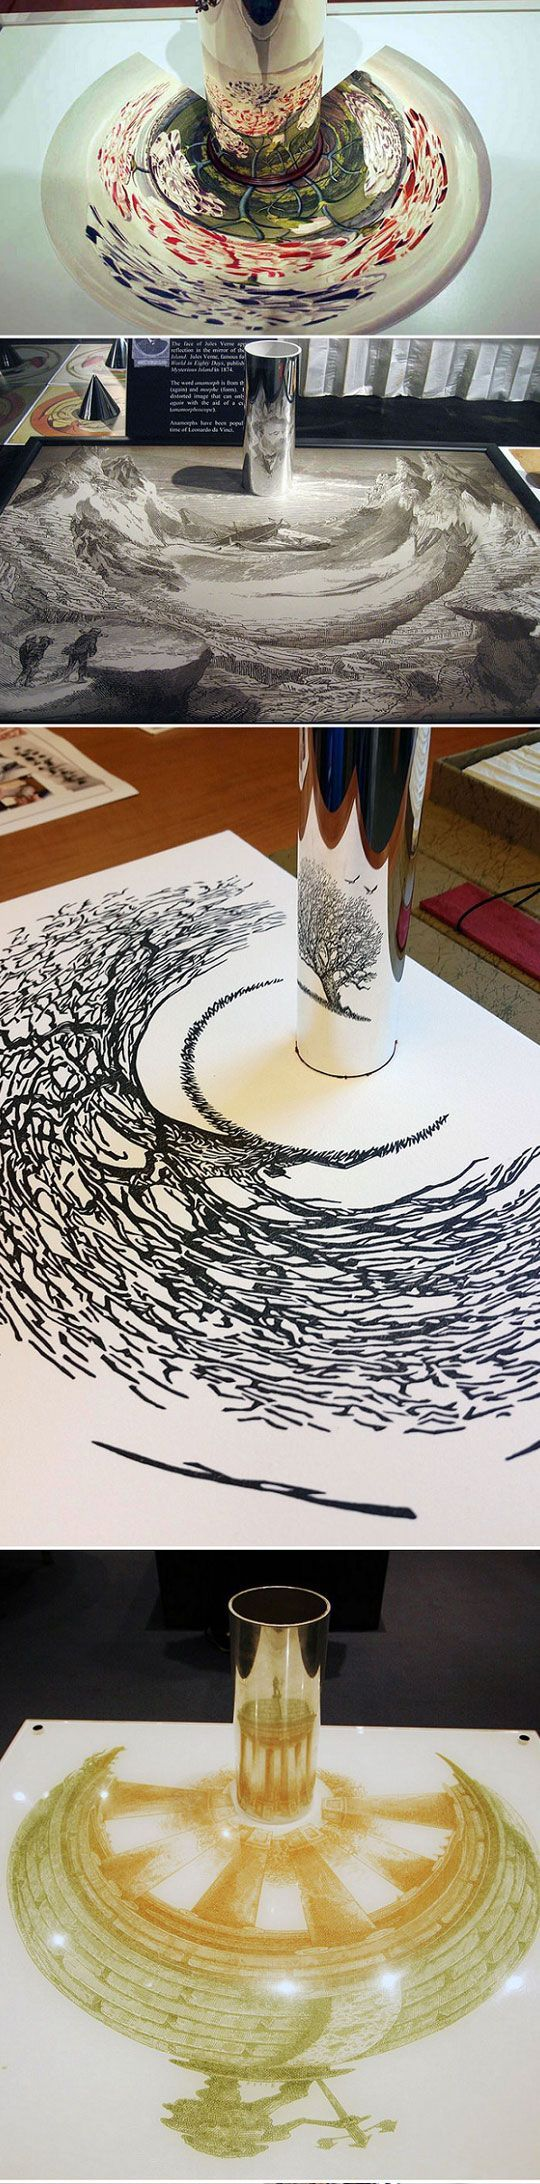 Anamorphic Artworks. Artists featured: Lori Fossum (top) and István Orosz (rest). Don't know the name of the artist behind the black tree.